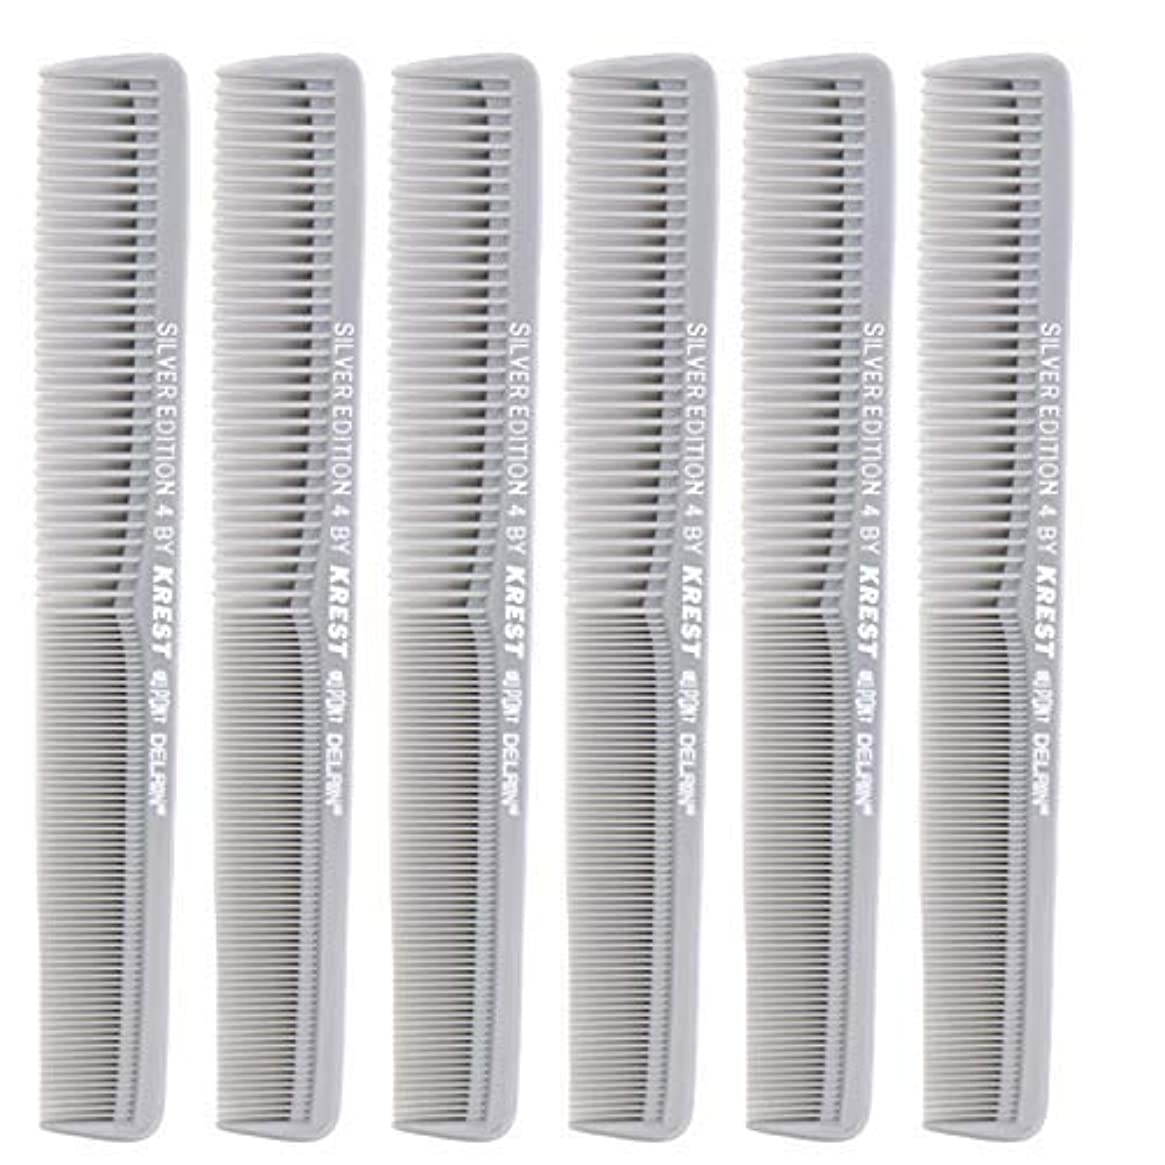 縁石千軽蔑する7 In. Silver Edition Heat Resistant All Purpose Hair Comb Model #4 Krest Comb, [並行輸入品]